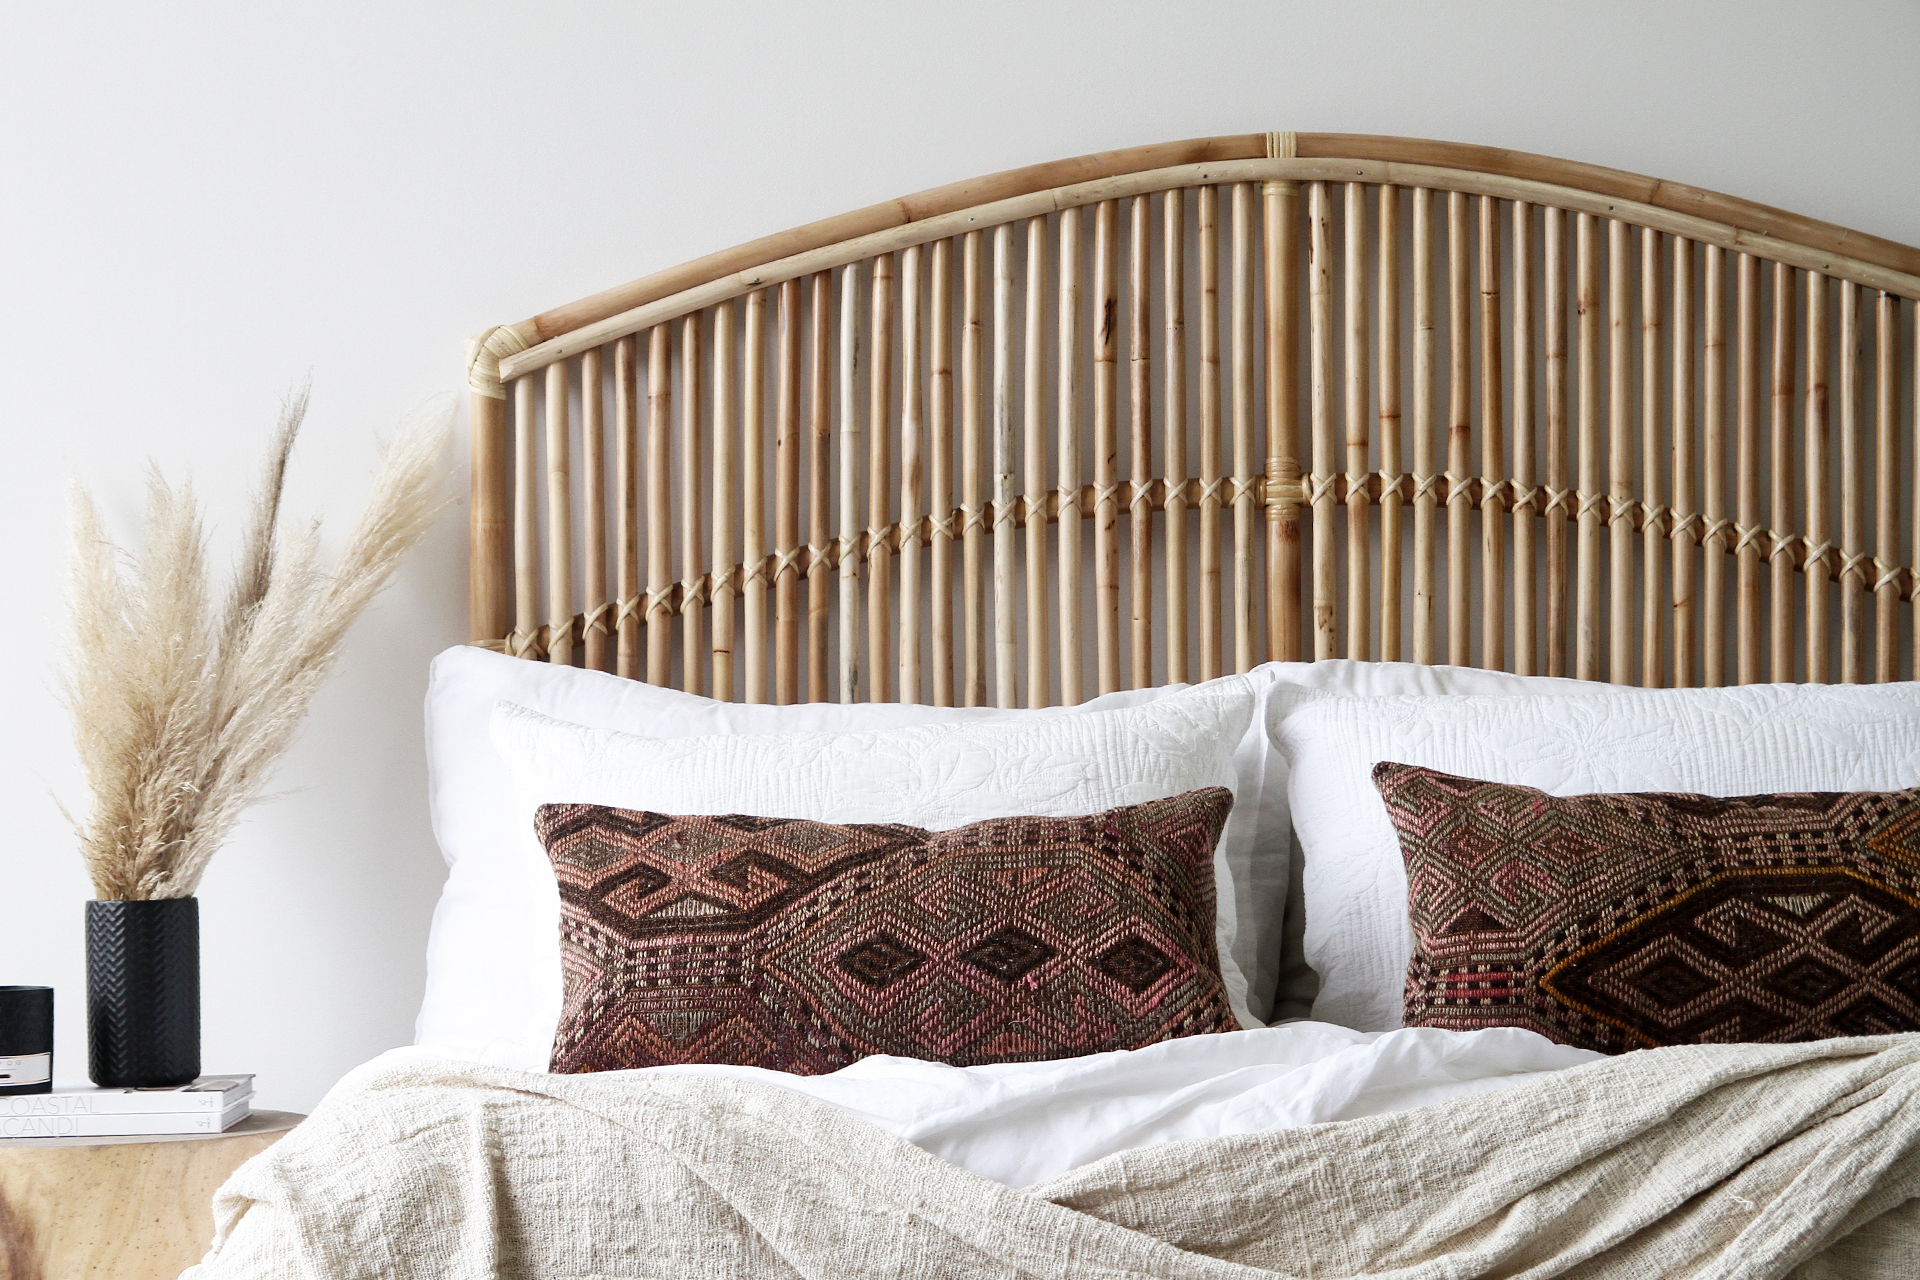 Momi Bay Queen Bedhead Naturally Cane Rattan And Wicker Furniture